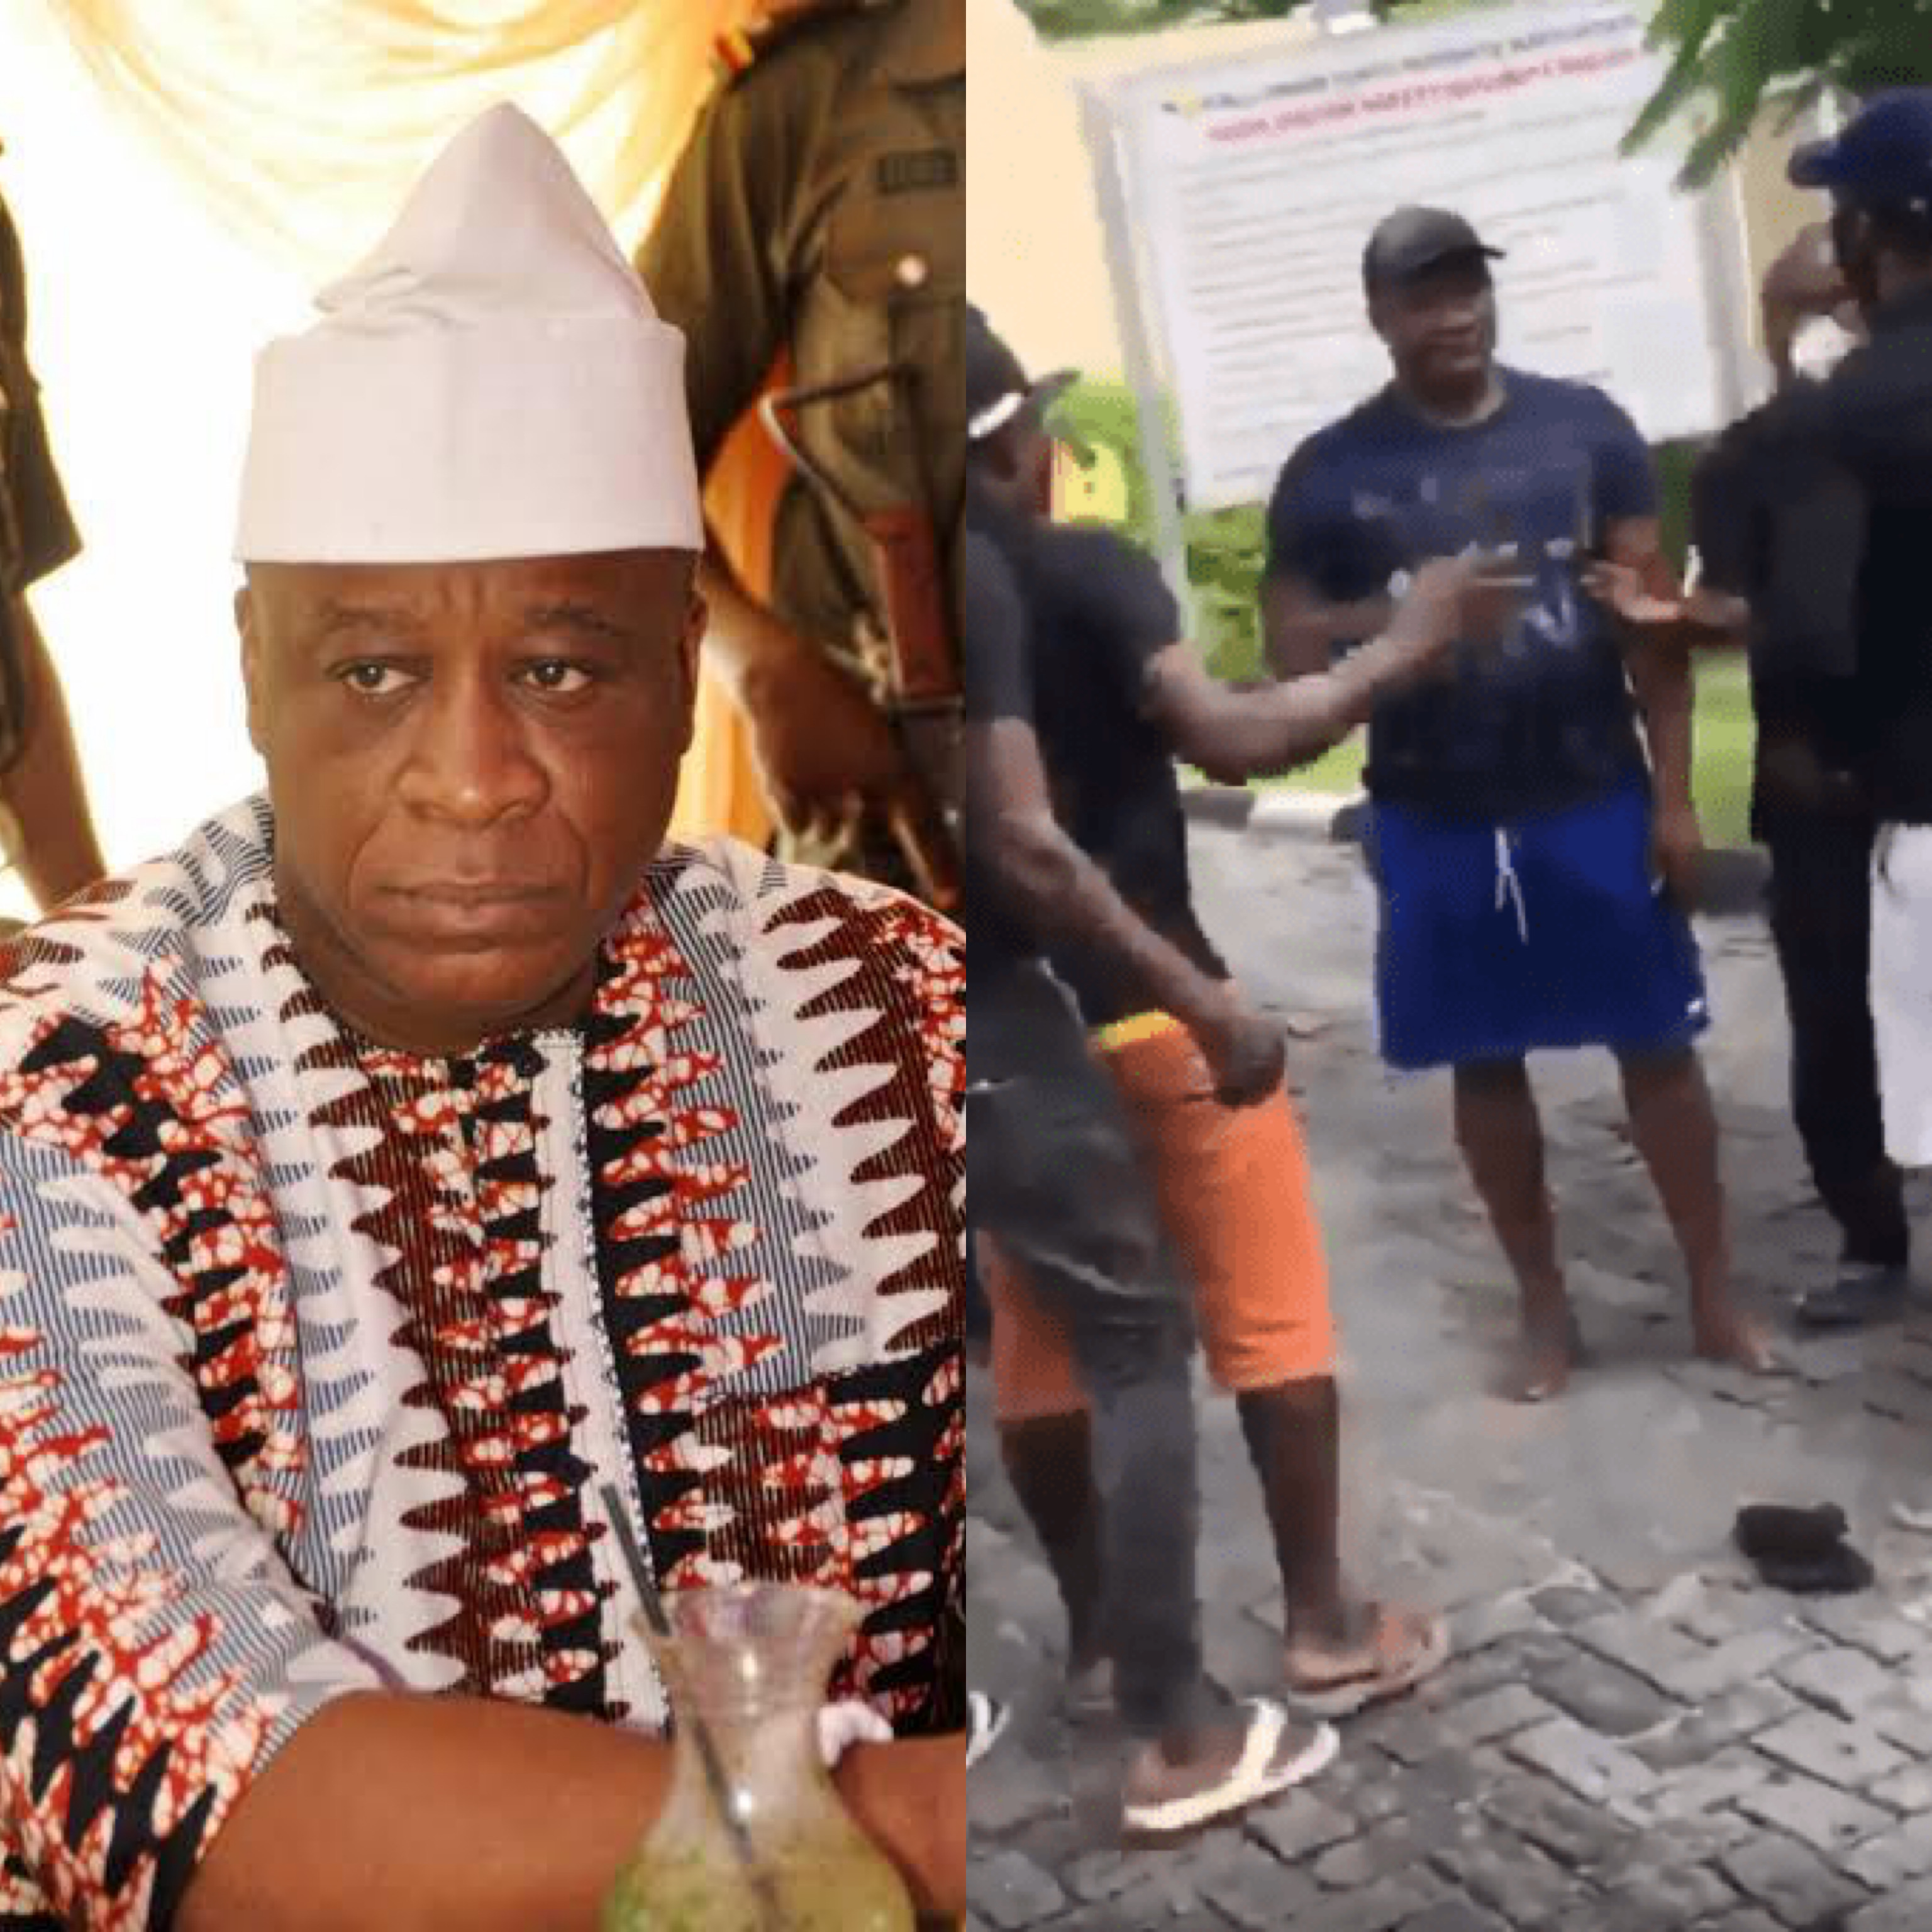 Tijani Oniru being attacked by unknown men on Sunday